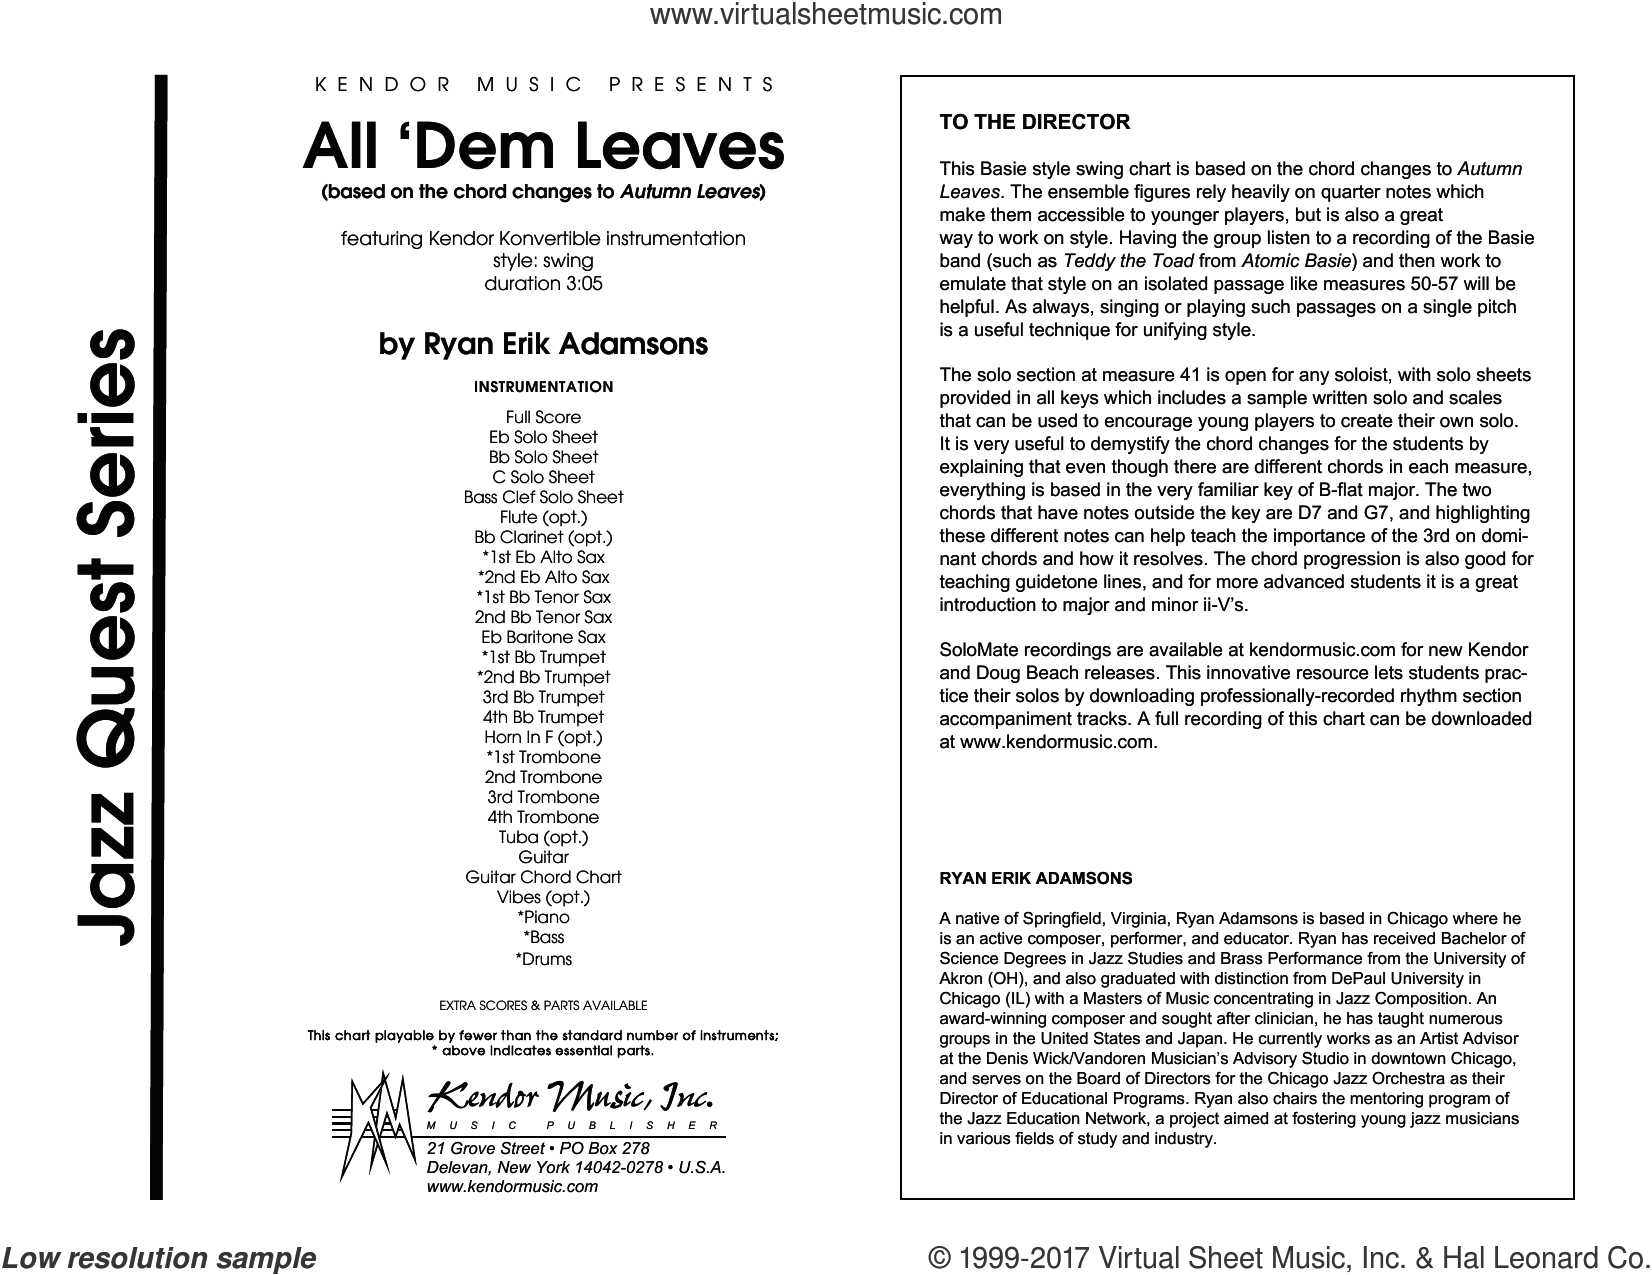 Adamsons - All 'Dem Leaves (based on the chord changes to Autumn Leaves)  sheet music (complete collection) for jazz band